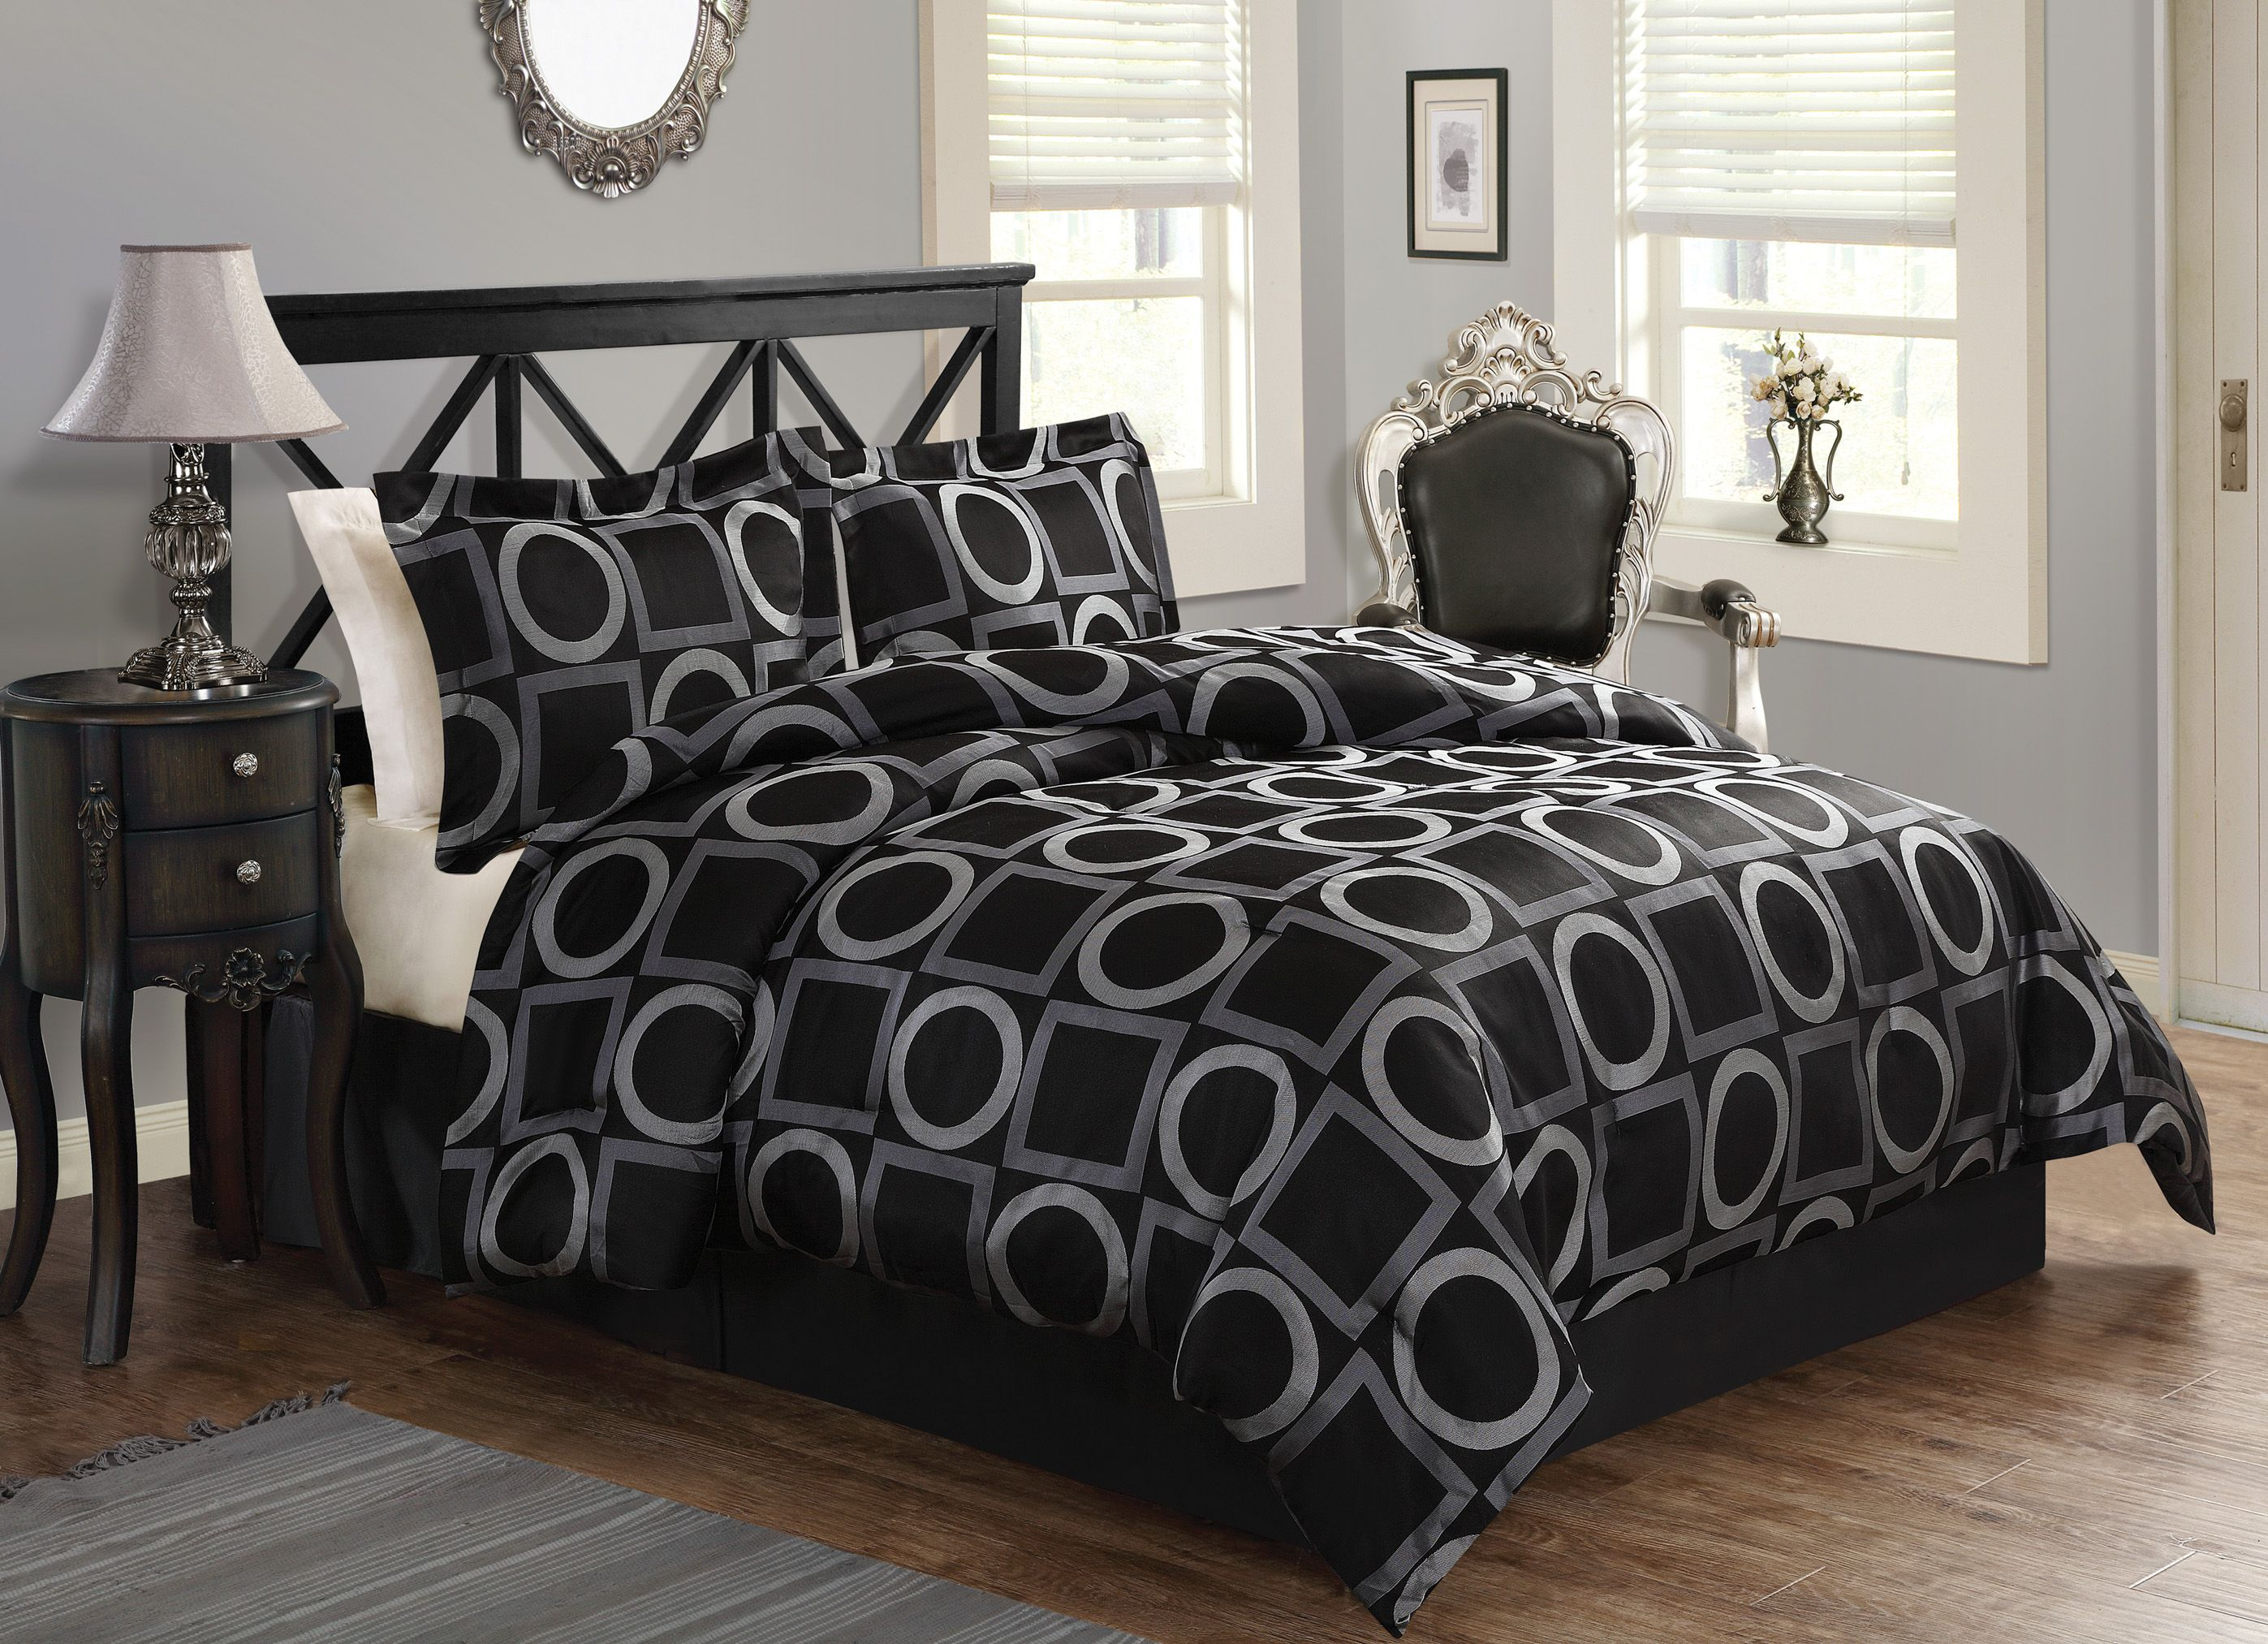 The Geo Grid Black comforter set is very bold and modern